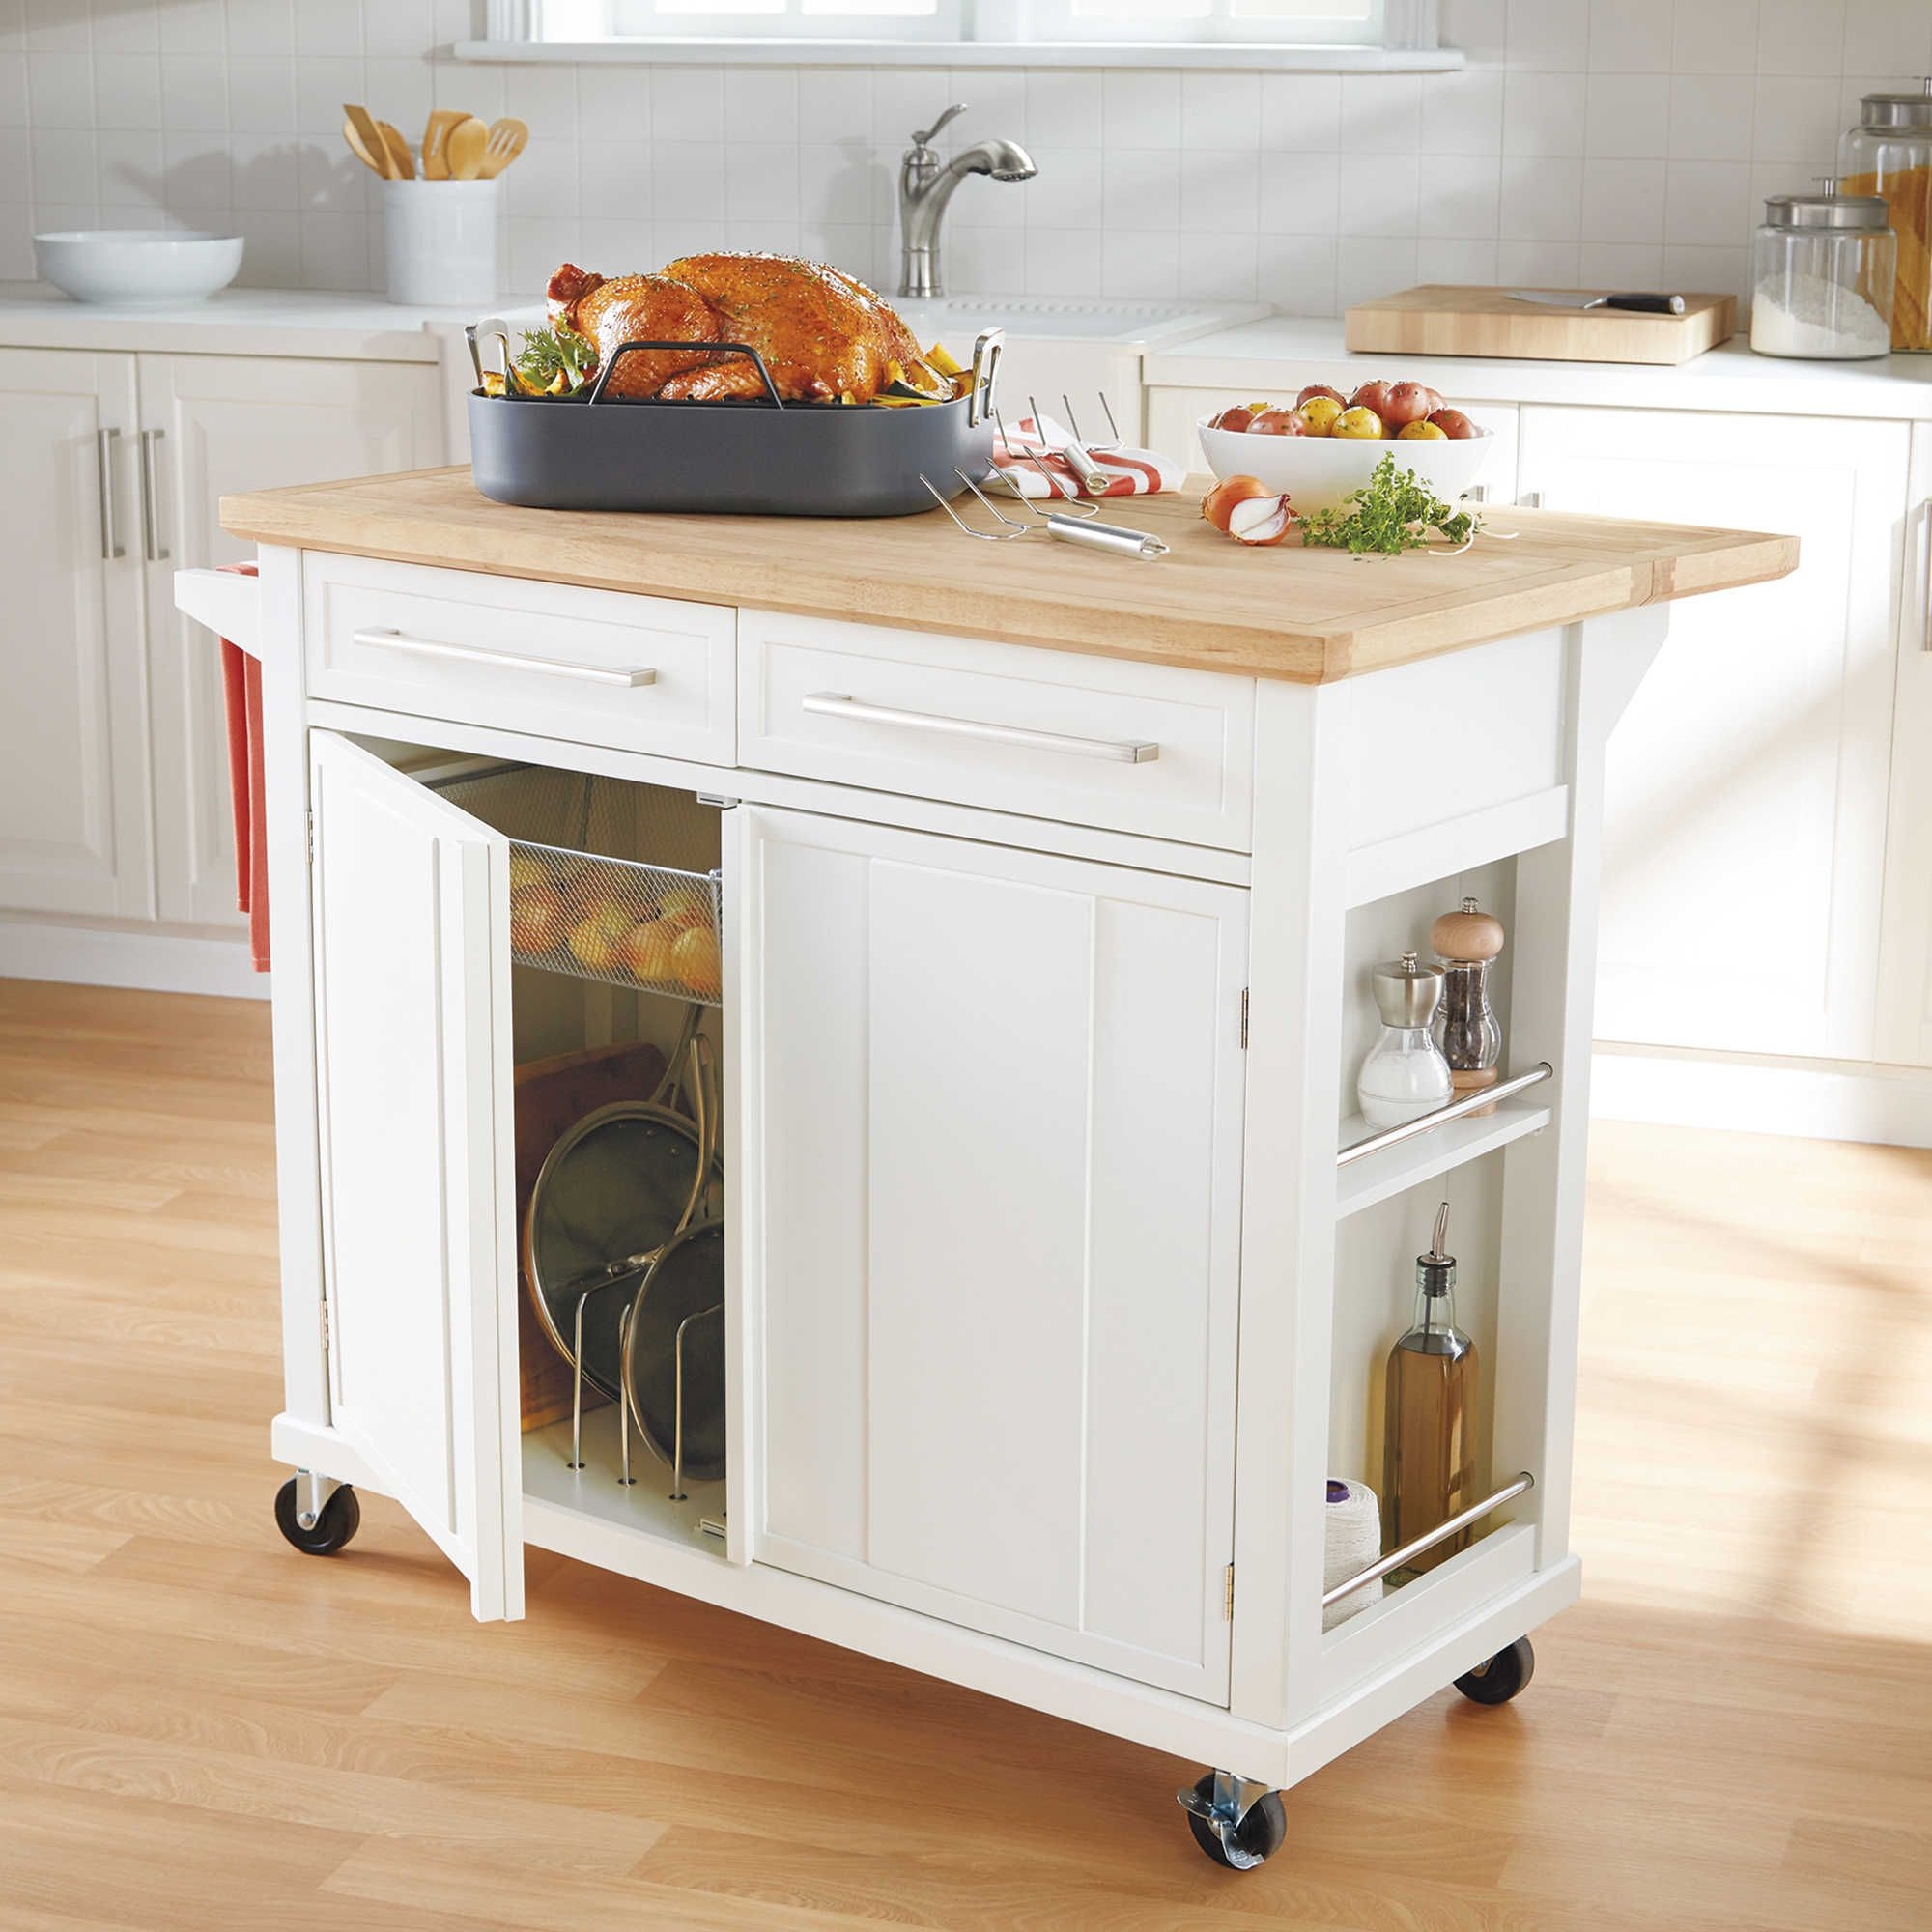 Small Kitchen Island With Seating: Real Simple® Rolling Kitchen Island In White $300 Bed Bath